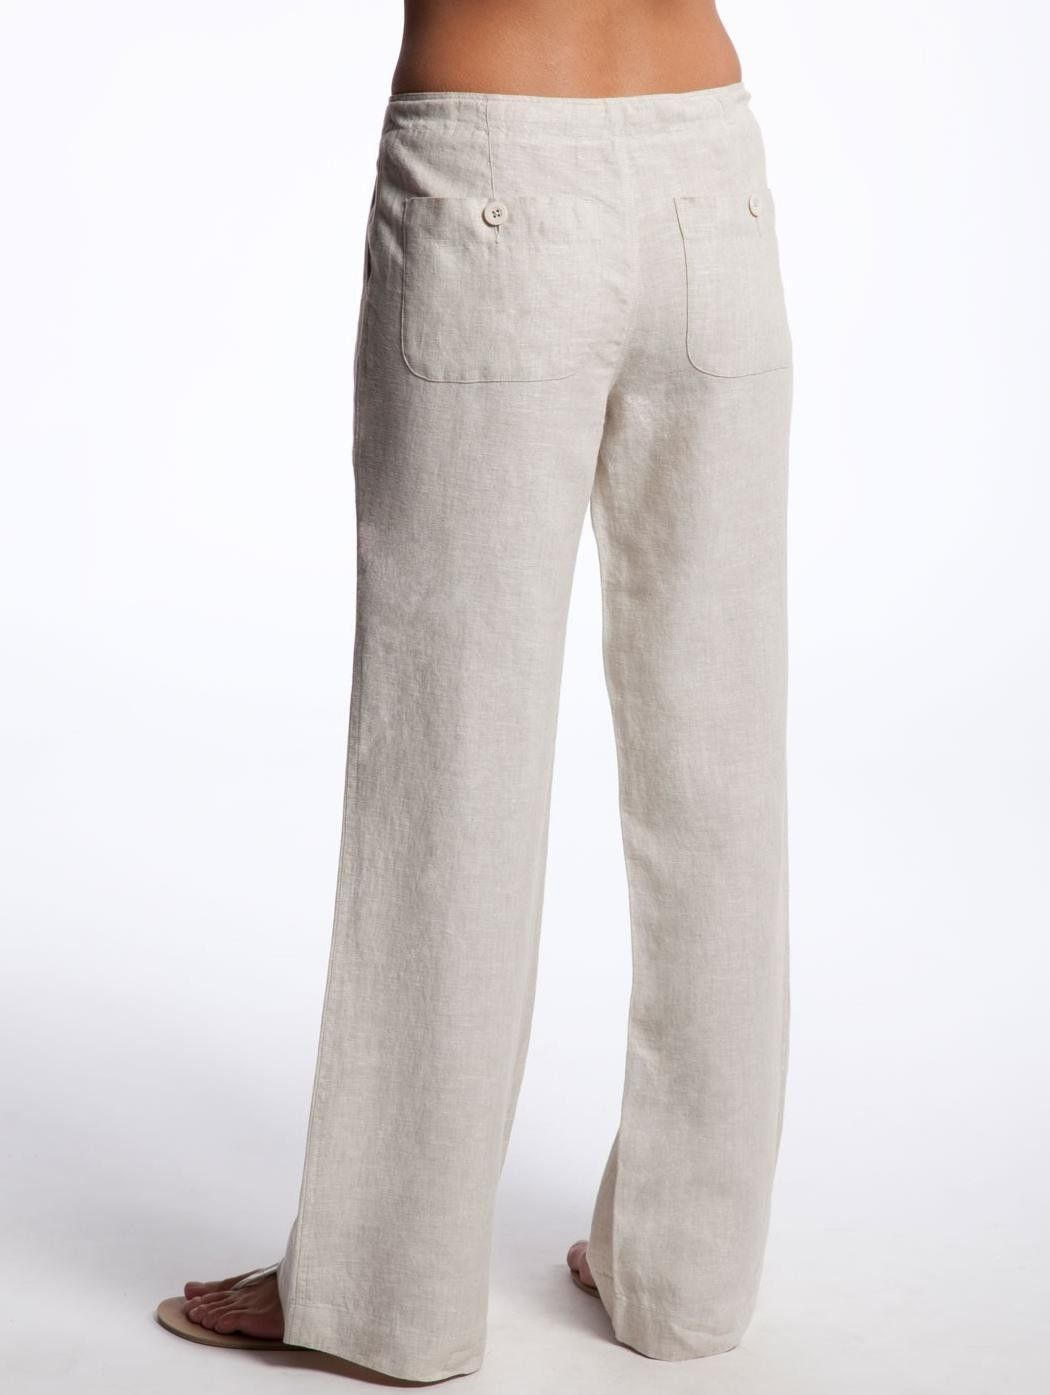 bee4edb6ebc Unique Eva Tralala White Casual Linen Pants Women Zulily